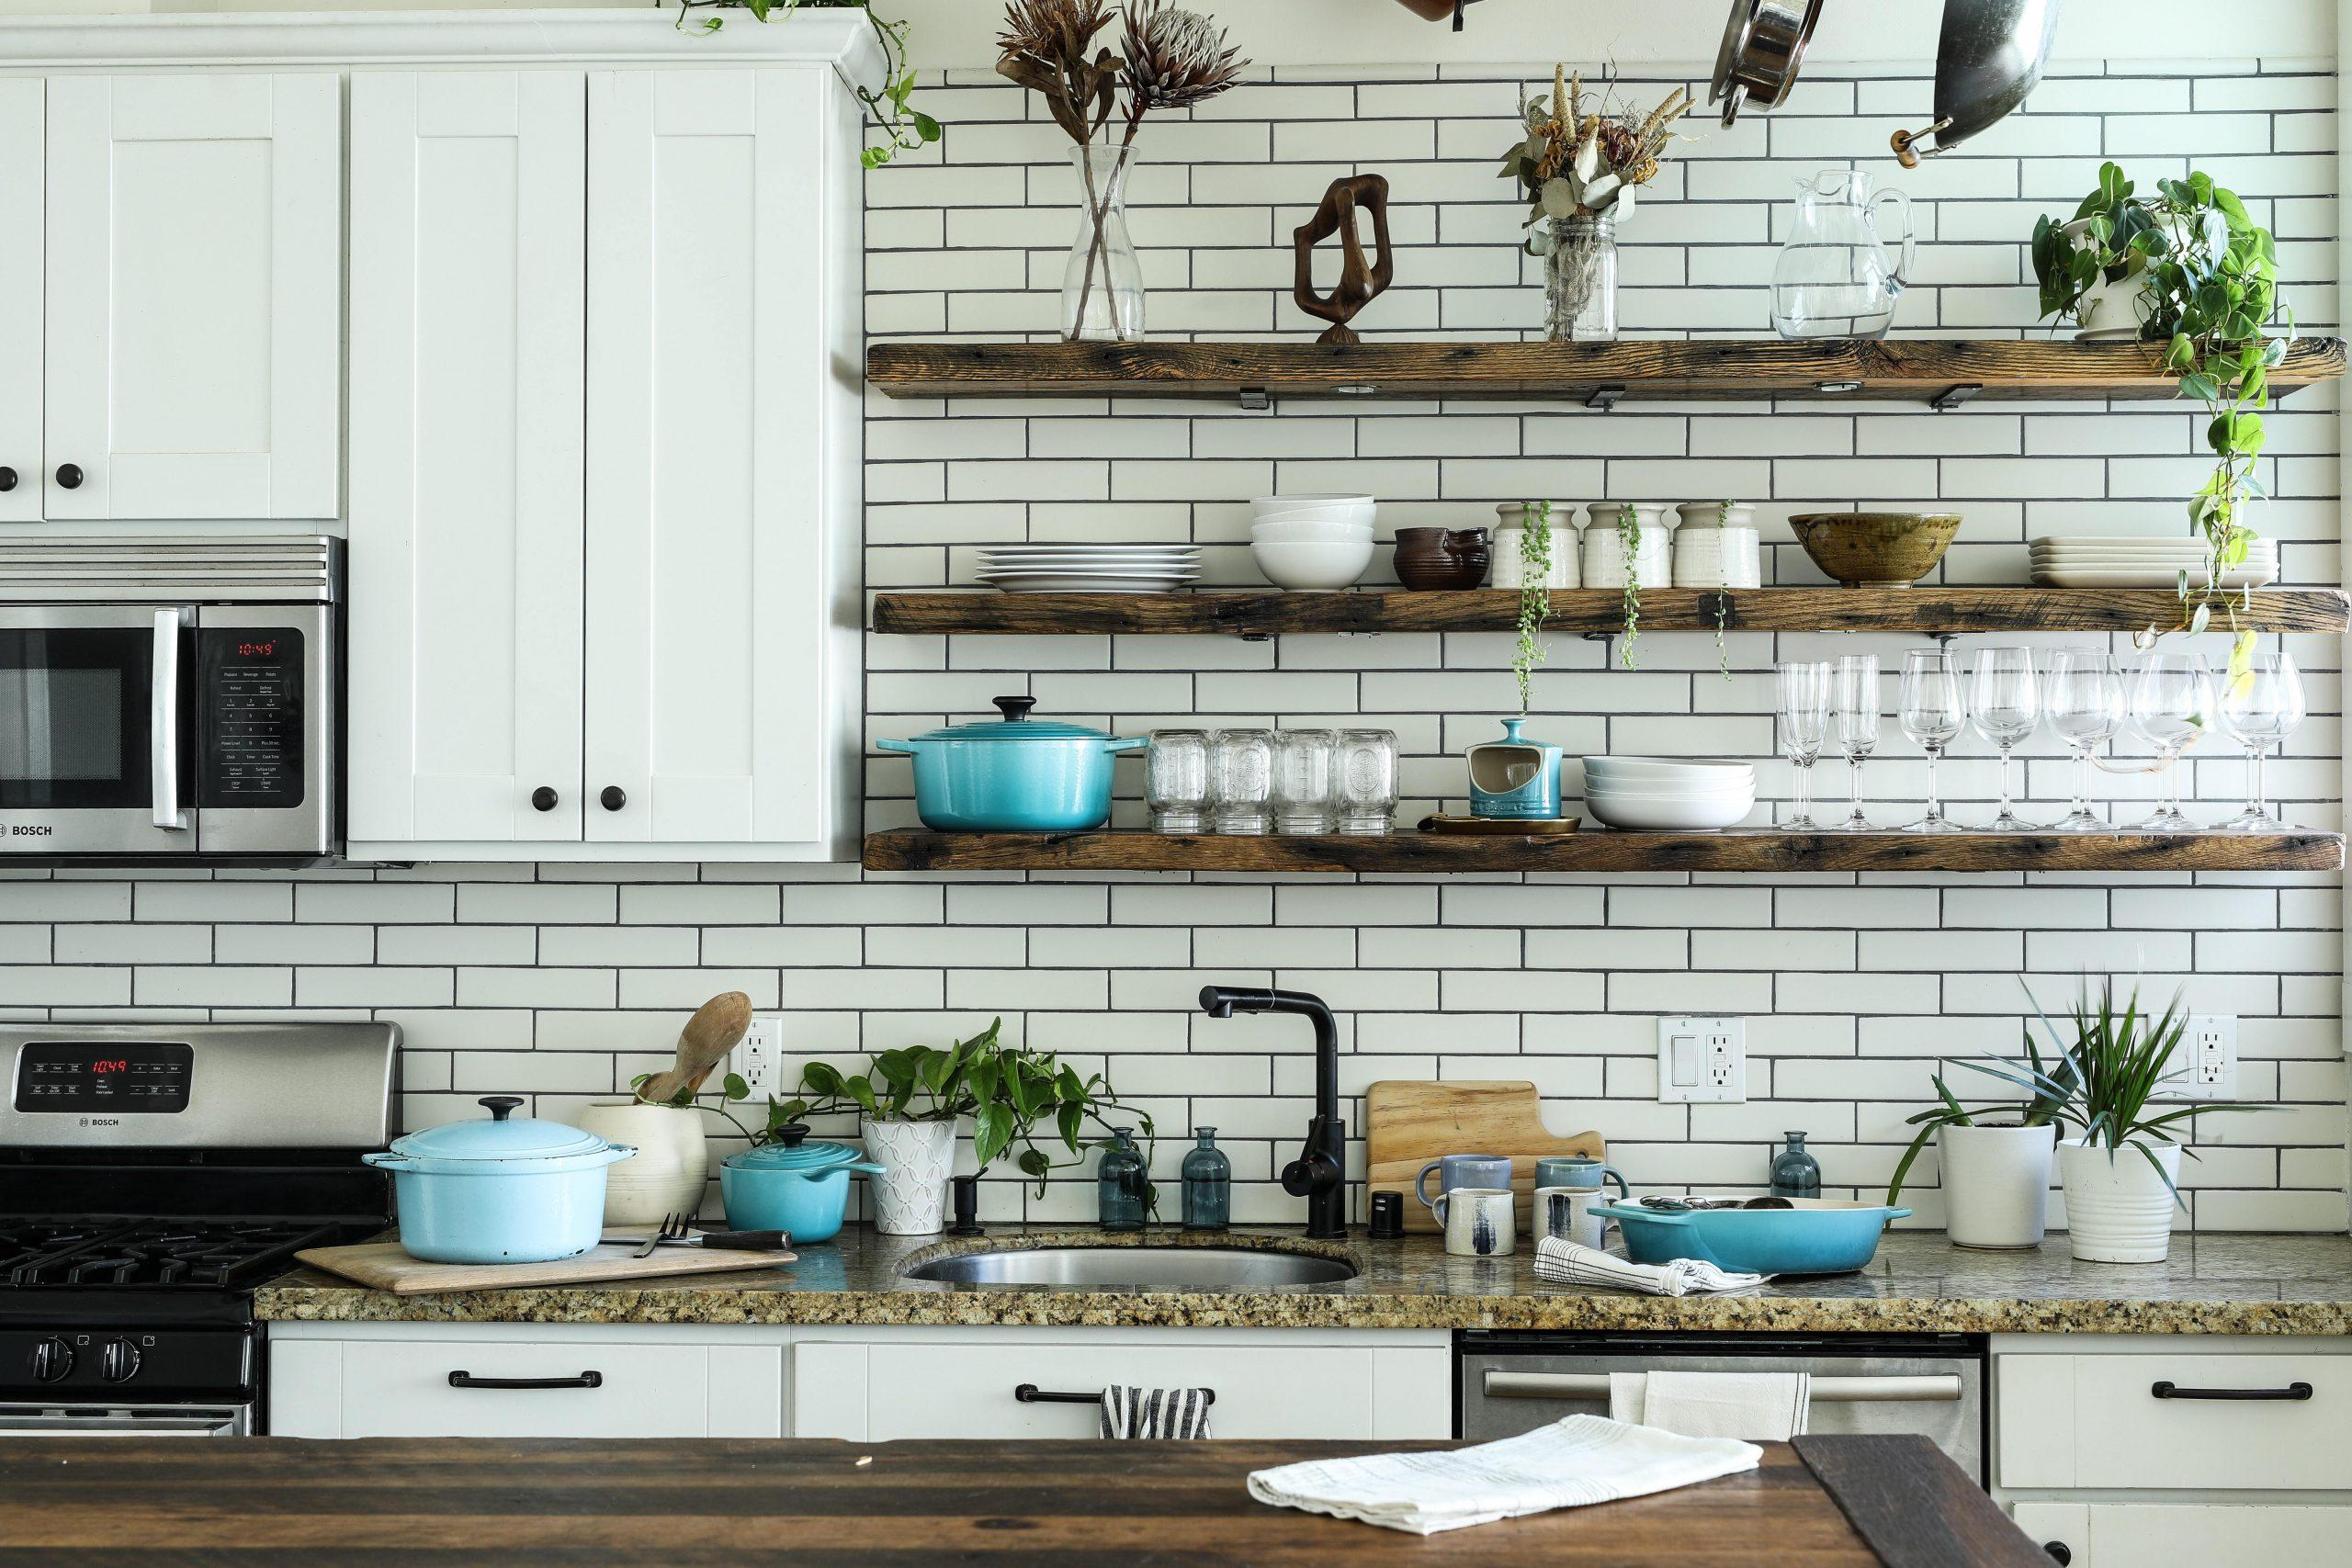 Remodel your kitchen habits for less waste